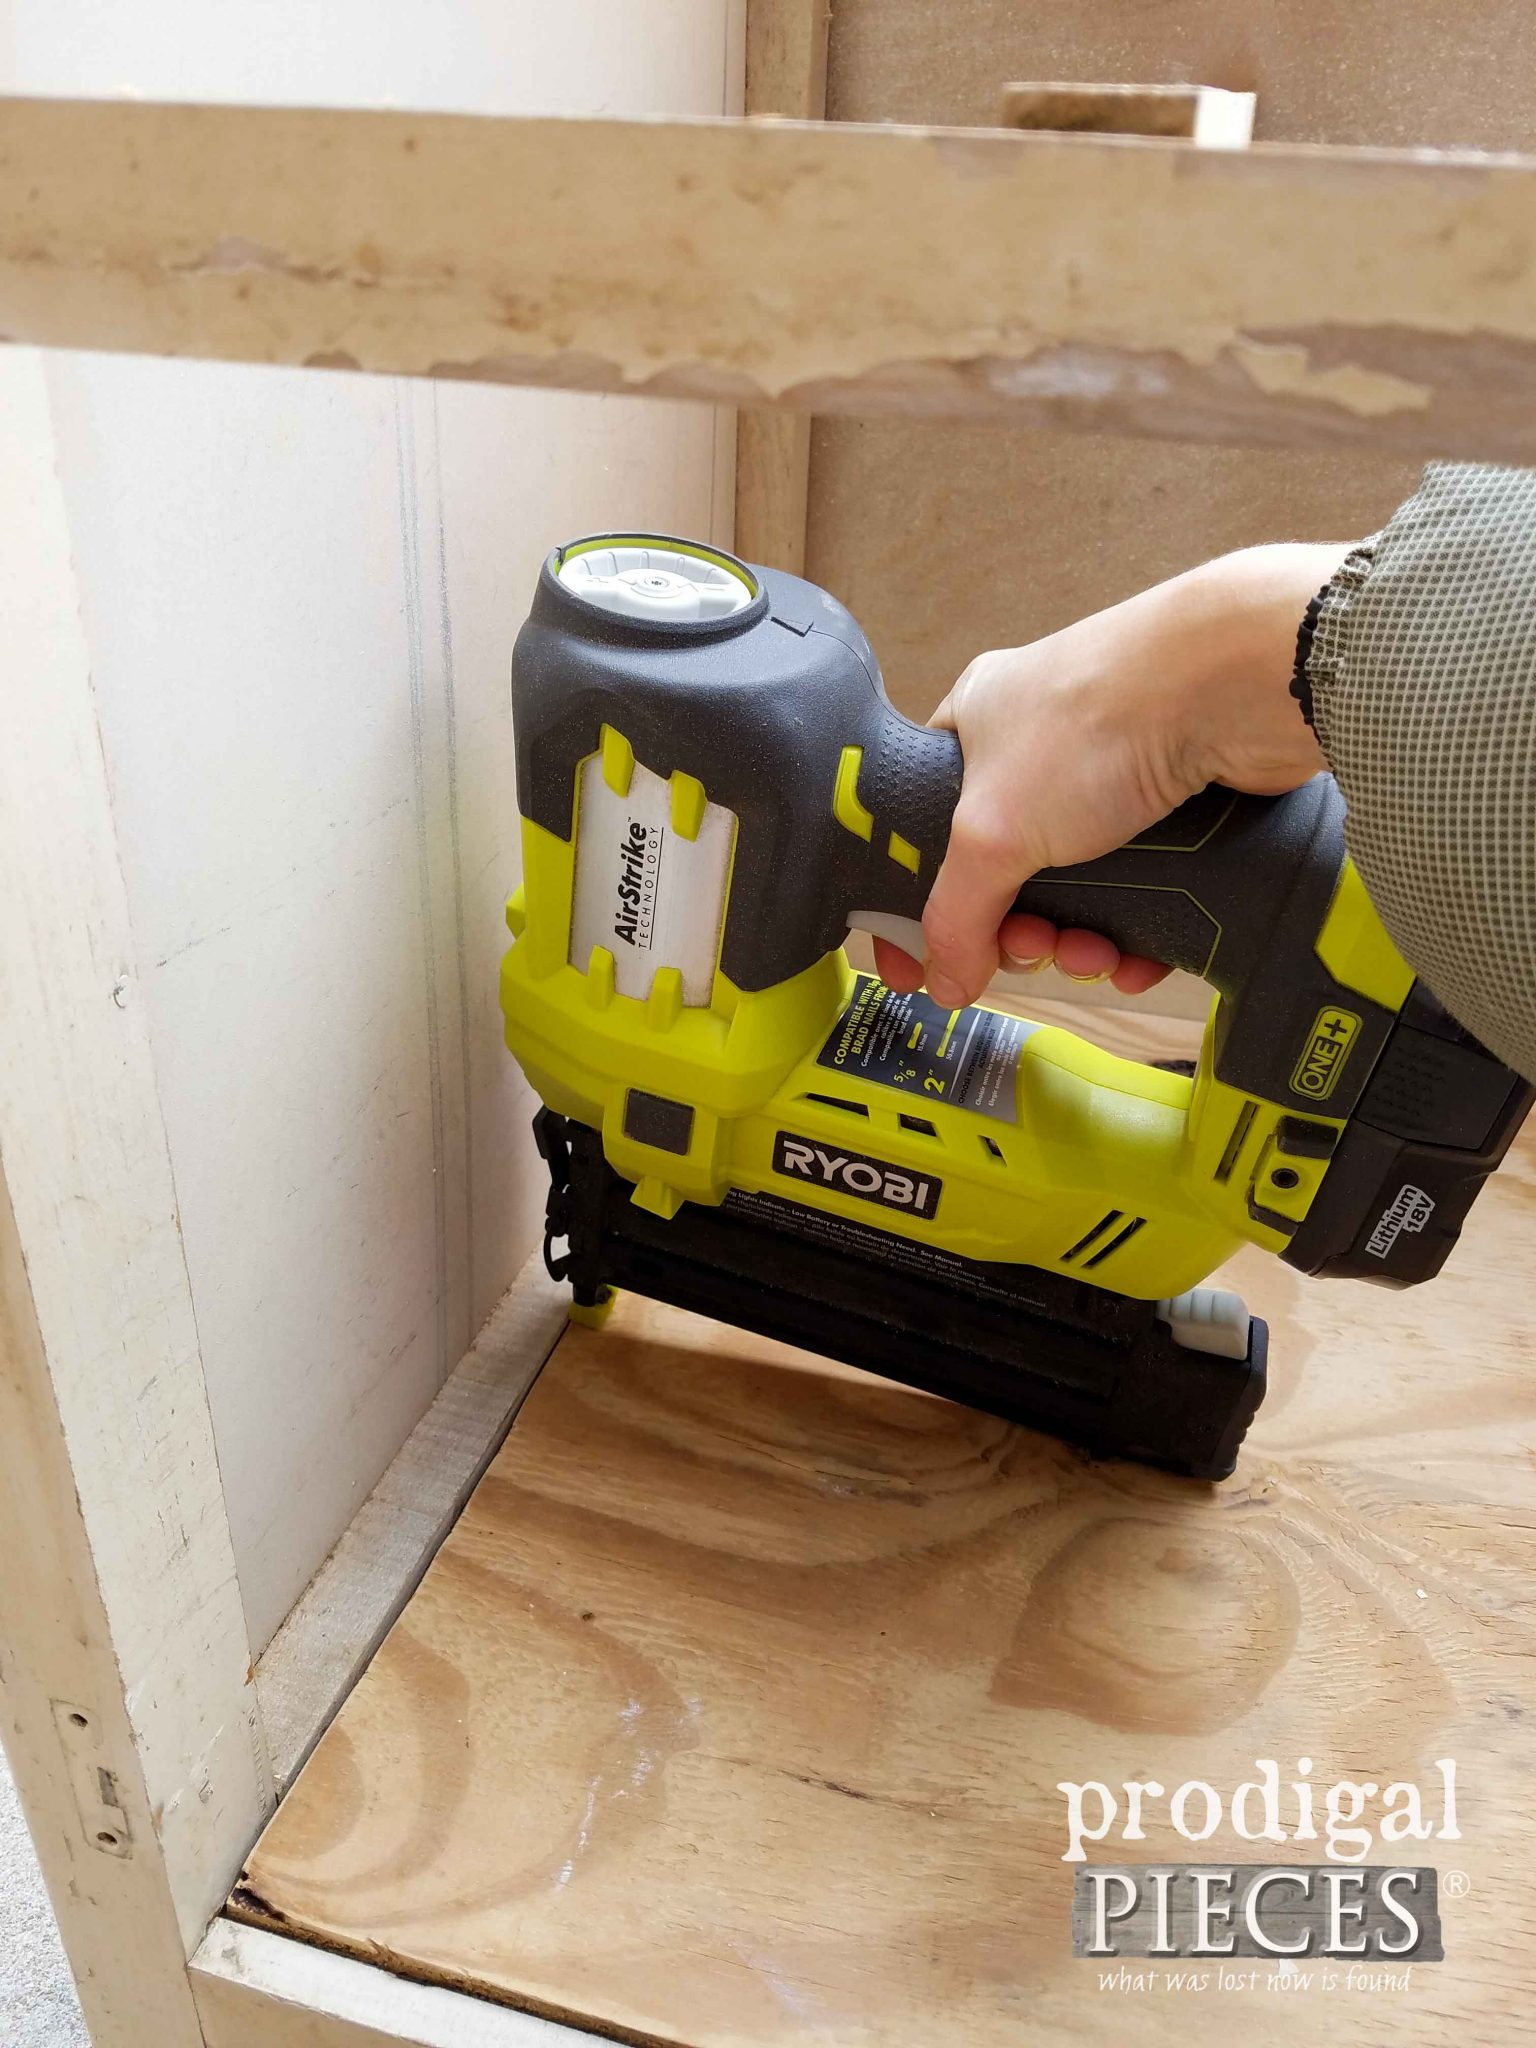 Ryobi AirStrike to Repair Cabinet | Prodigal Pieces | prodigalpieces.com